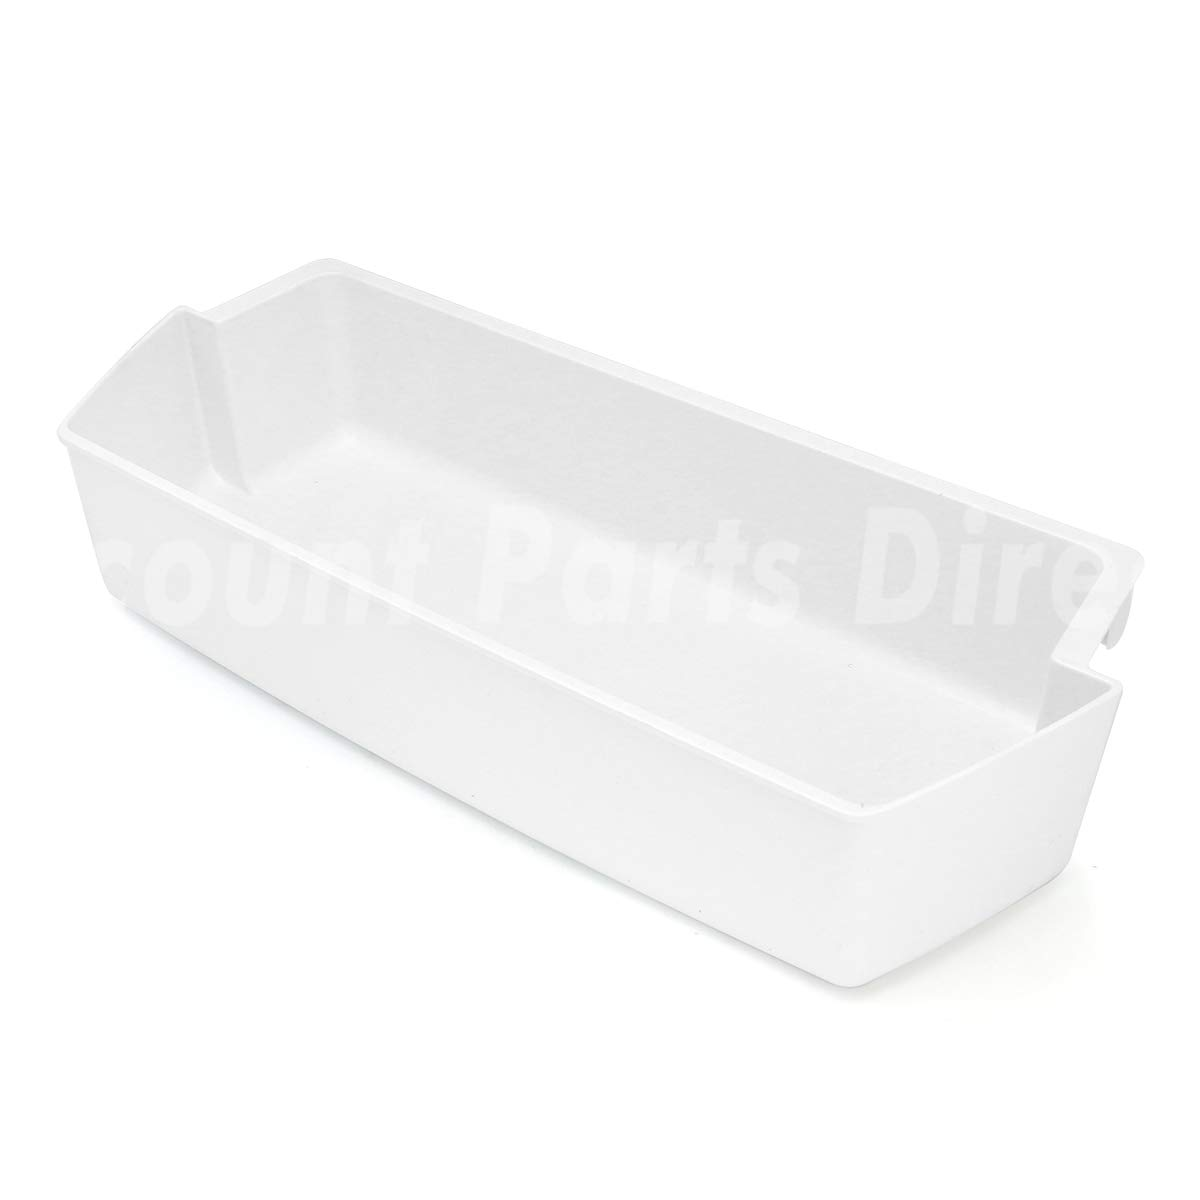 2187172 Door Shelf Bin for Whirlpool for Frigidaire Whirlpool Kenmore Refrigerator PS328468 41nM2R2BvF-L